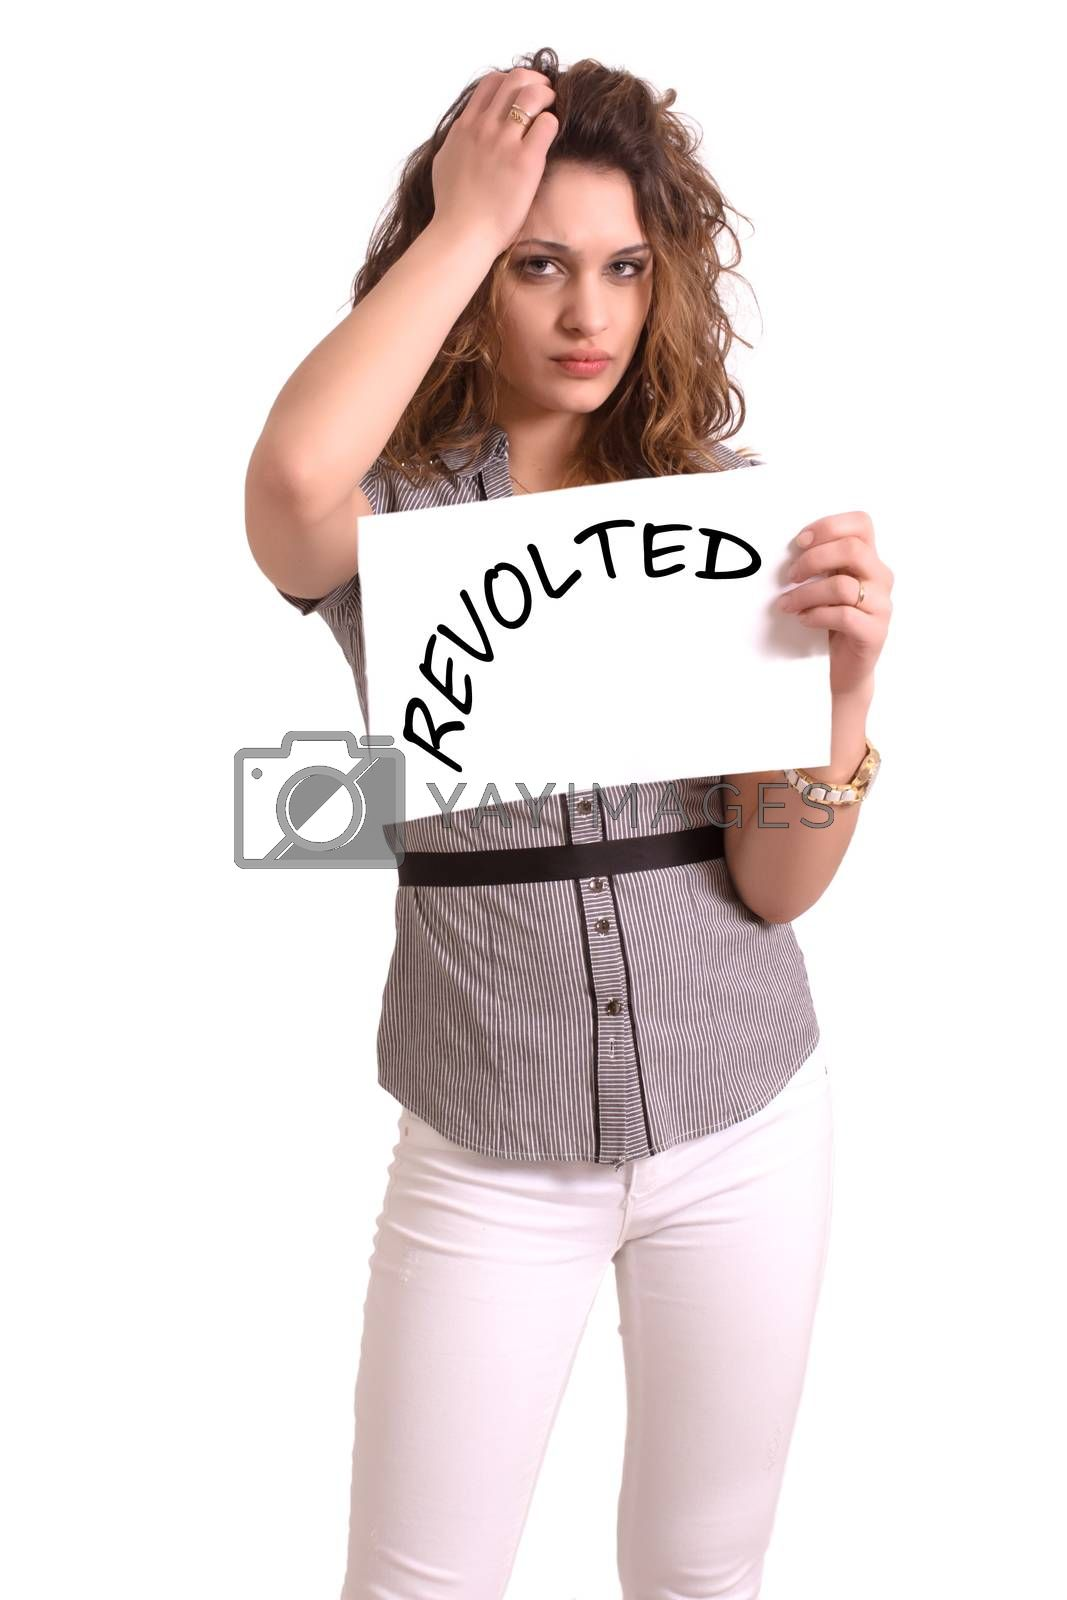 Young attractive woman holding paper with Revolted text on white background